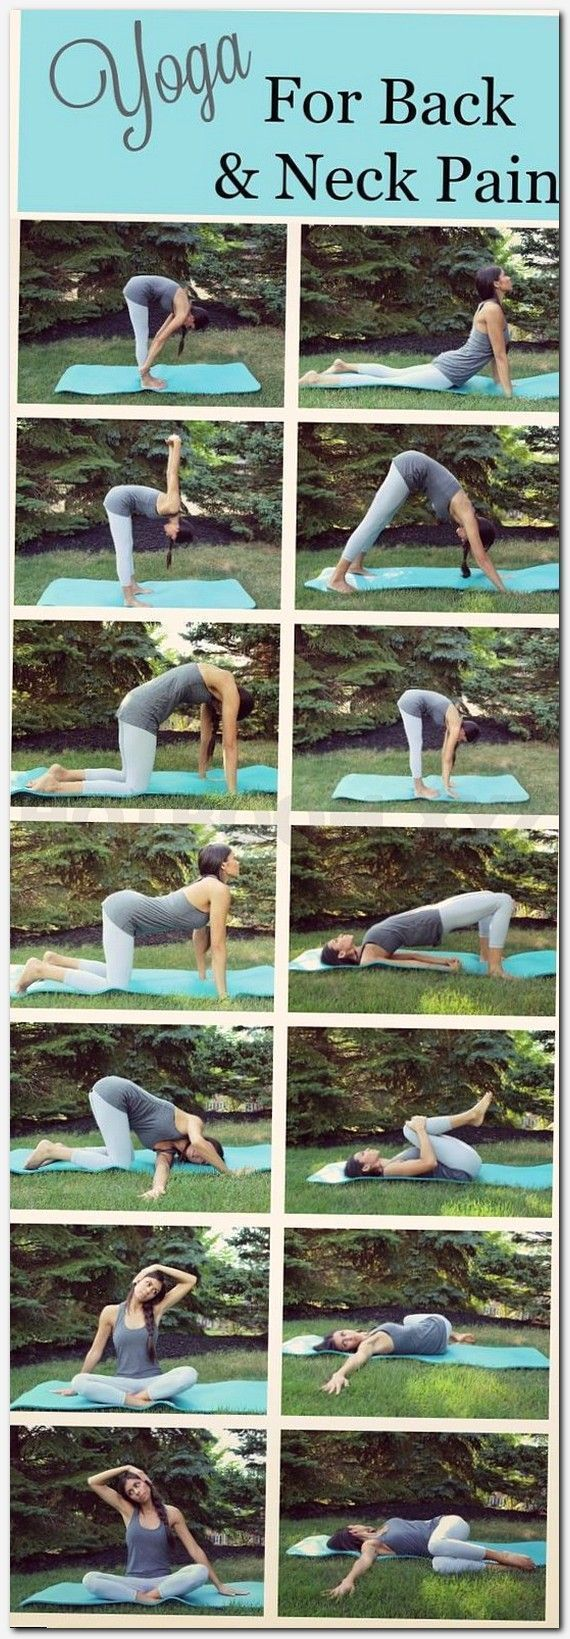 Yoga Poses For Overweight Beginners Hatha Flow Asanas Names What Is The Best Exercise To Lose Weight Do Ear Seeds Work Los